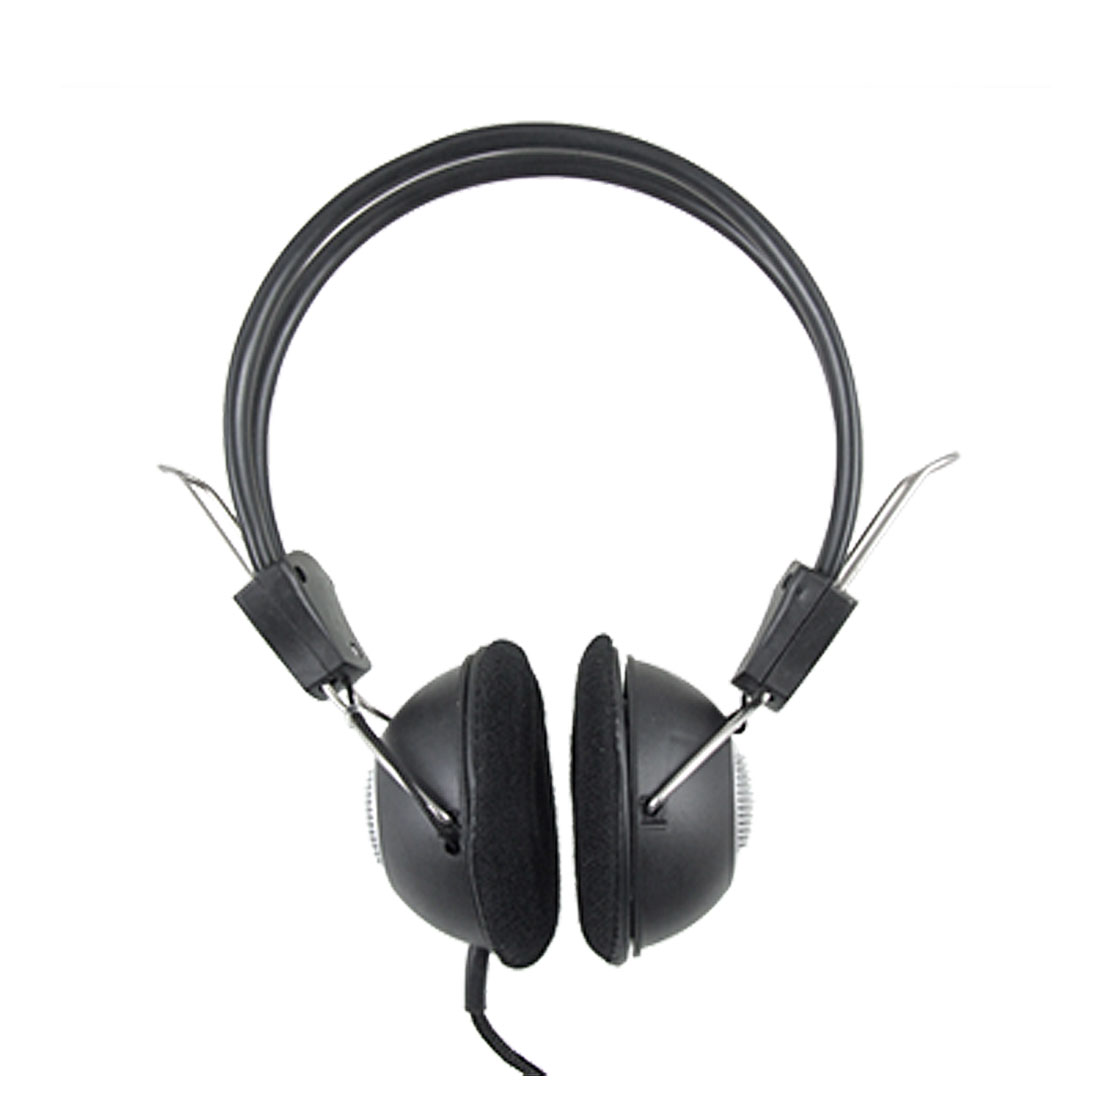 3.5mm Black Silver Tone Adjustable Computer Headphone w Microphone